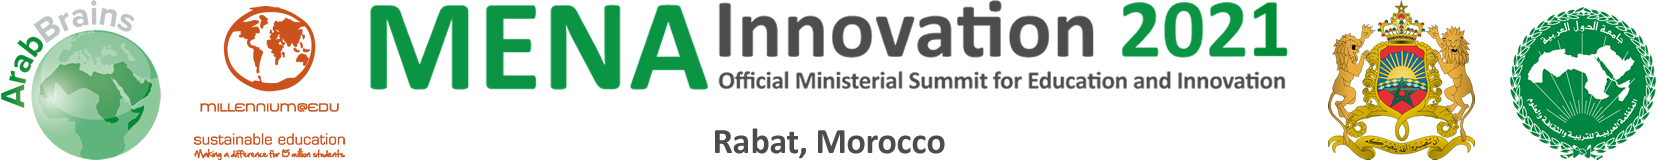 Official Ministerial Summit for Education & Innovation